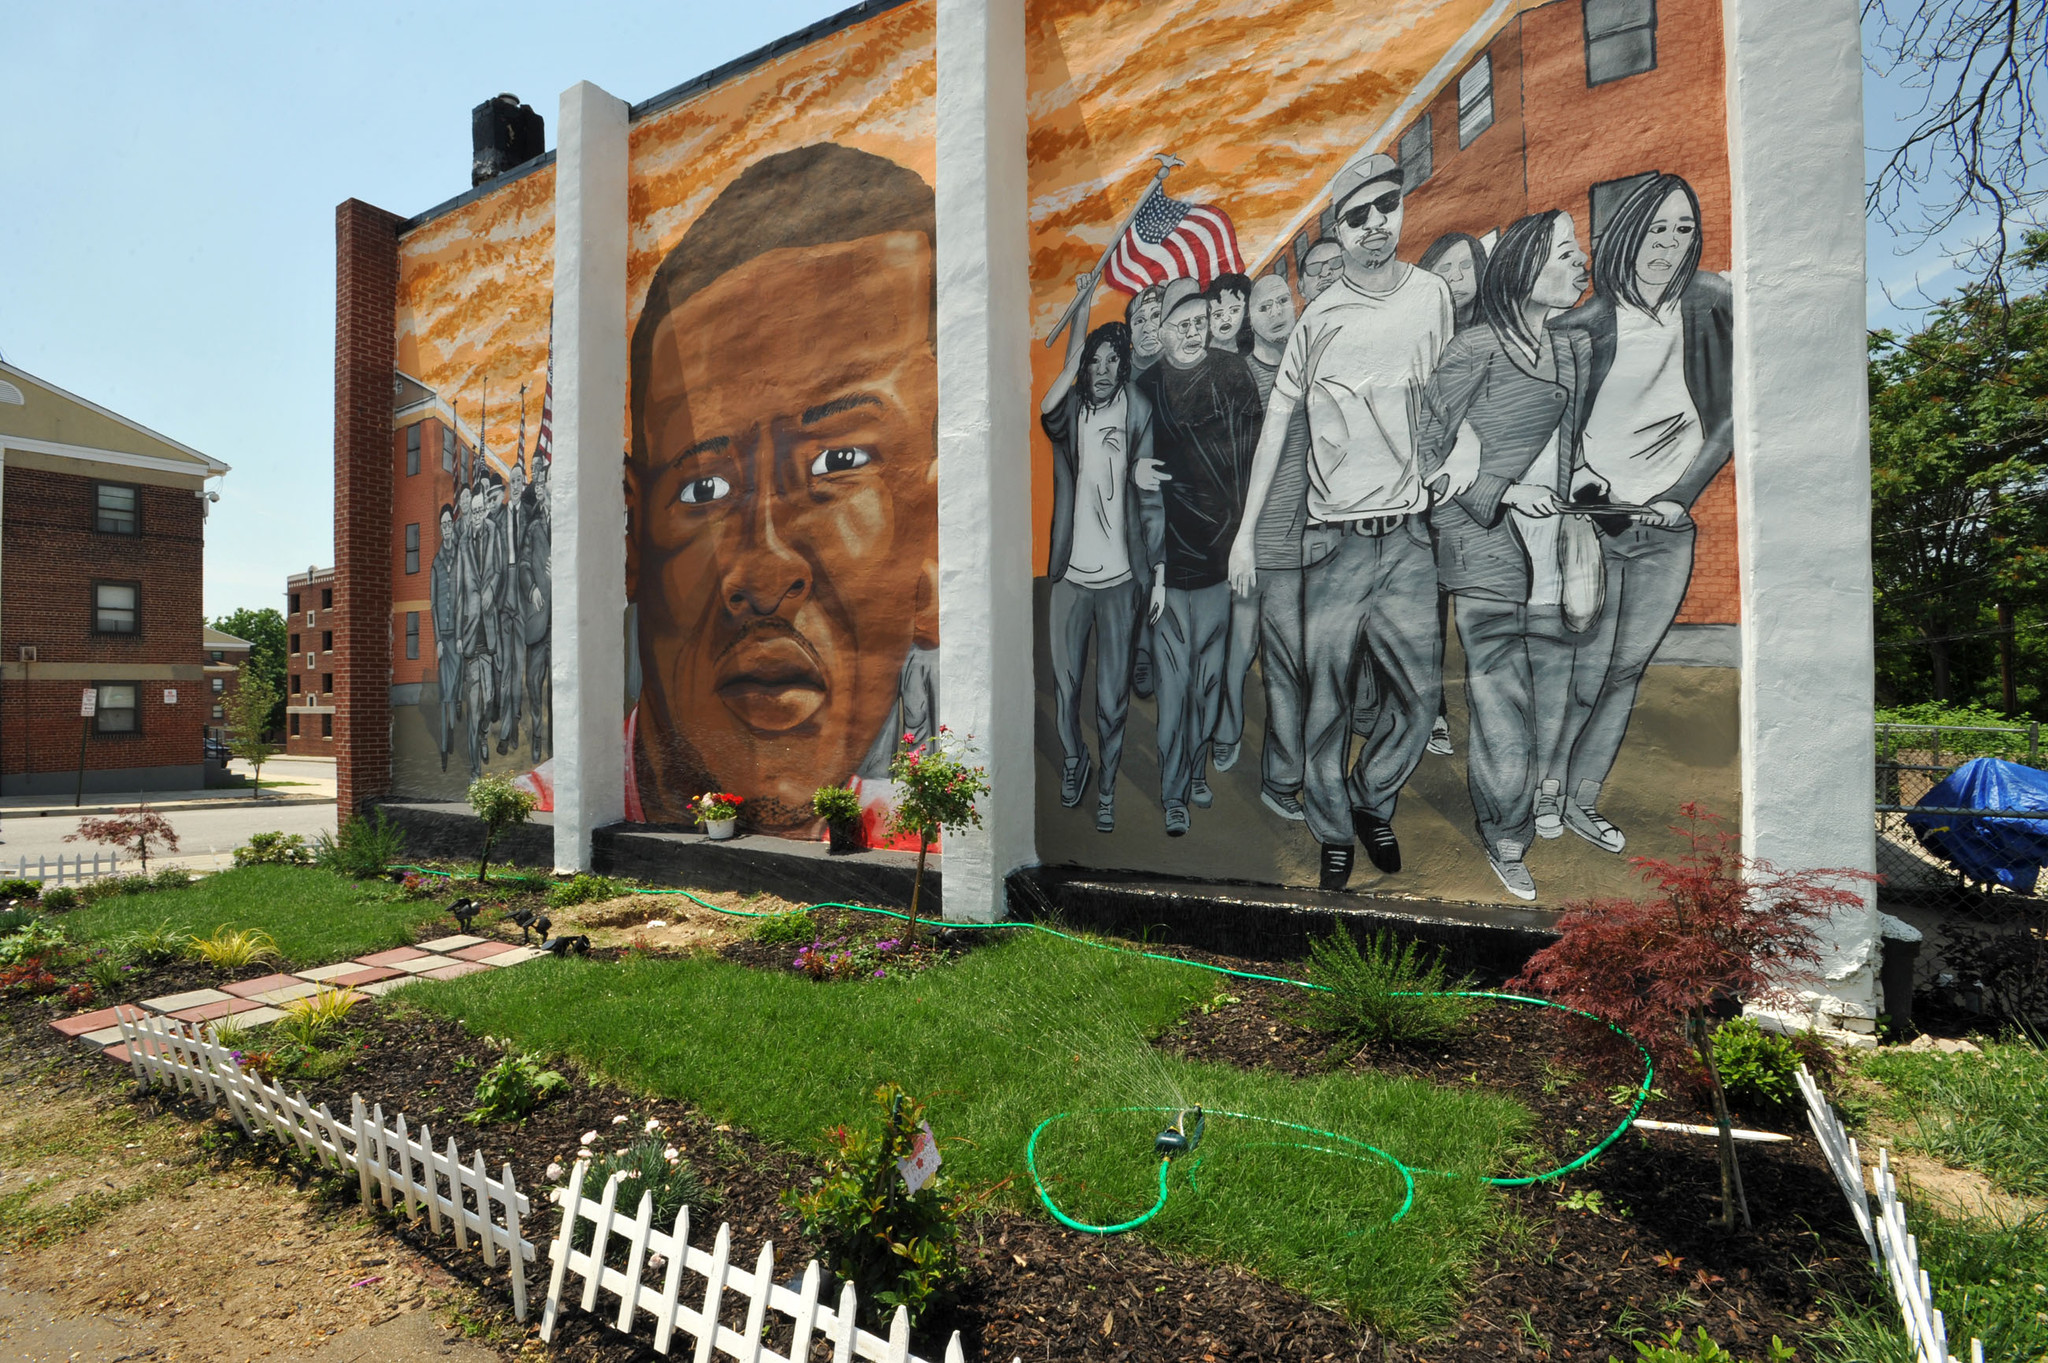 After freddie gray unrest activists hope to transform sandtown after freddie gray unrest activists hope to transform sandtown winchester with murals gardens baltimore sun amipublicfo Choice Image